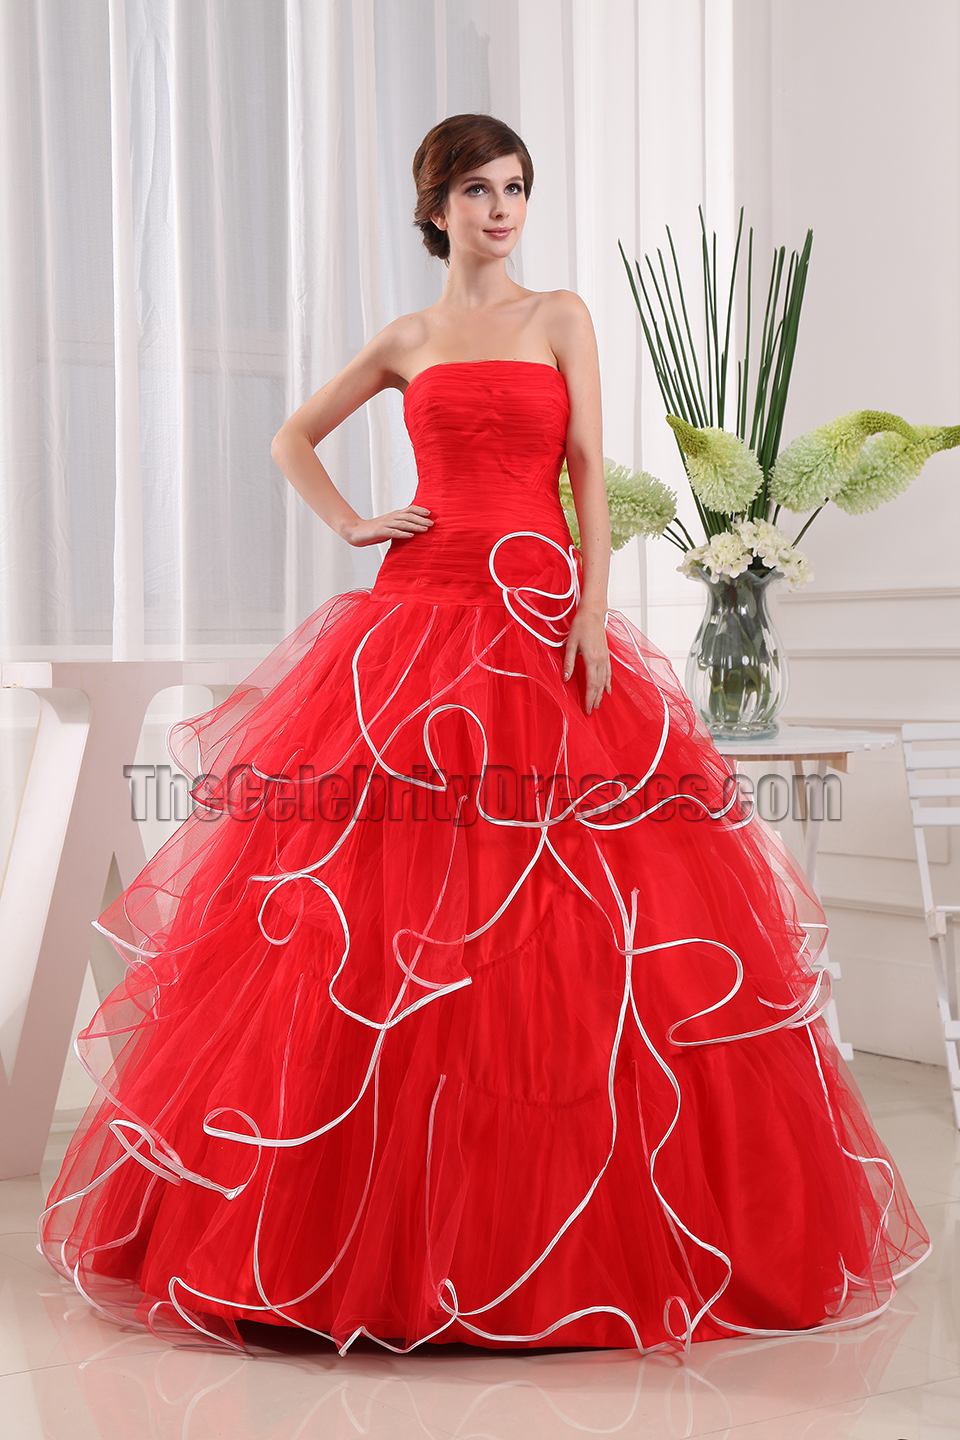 Glamorous Red Strapless Ball Gown Quinceanera Dresses ...